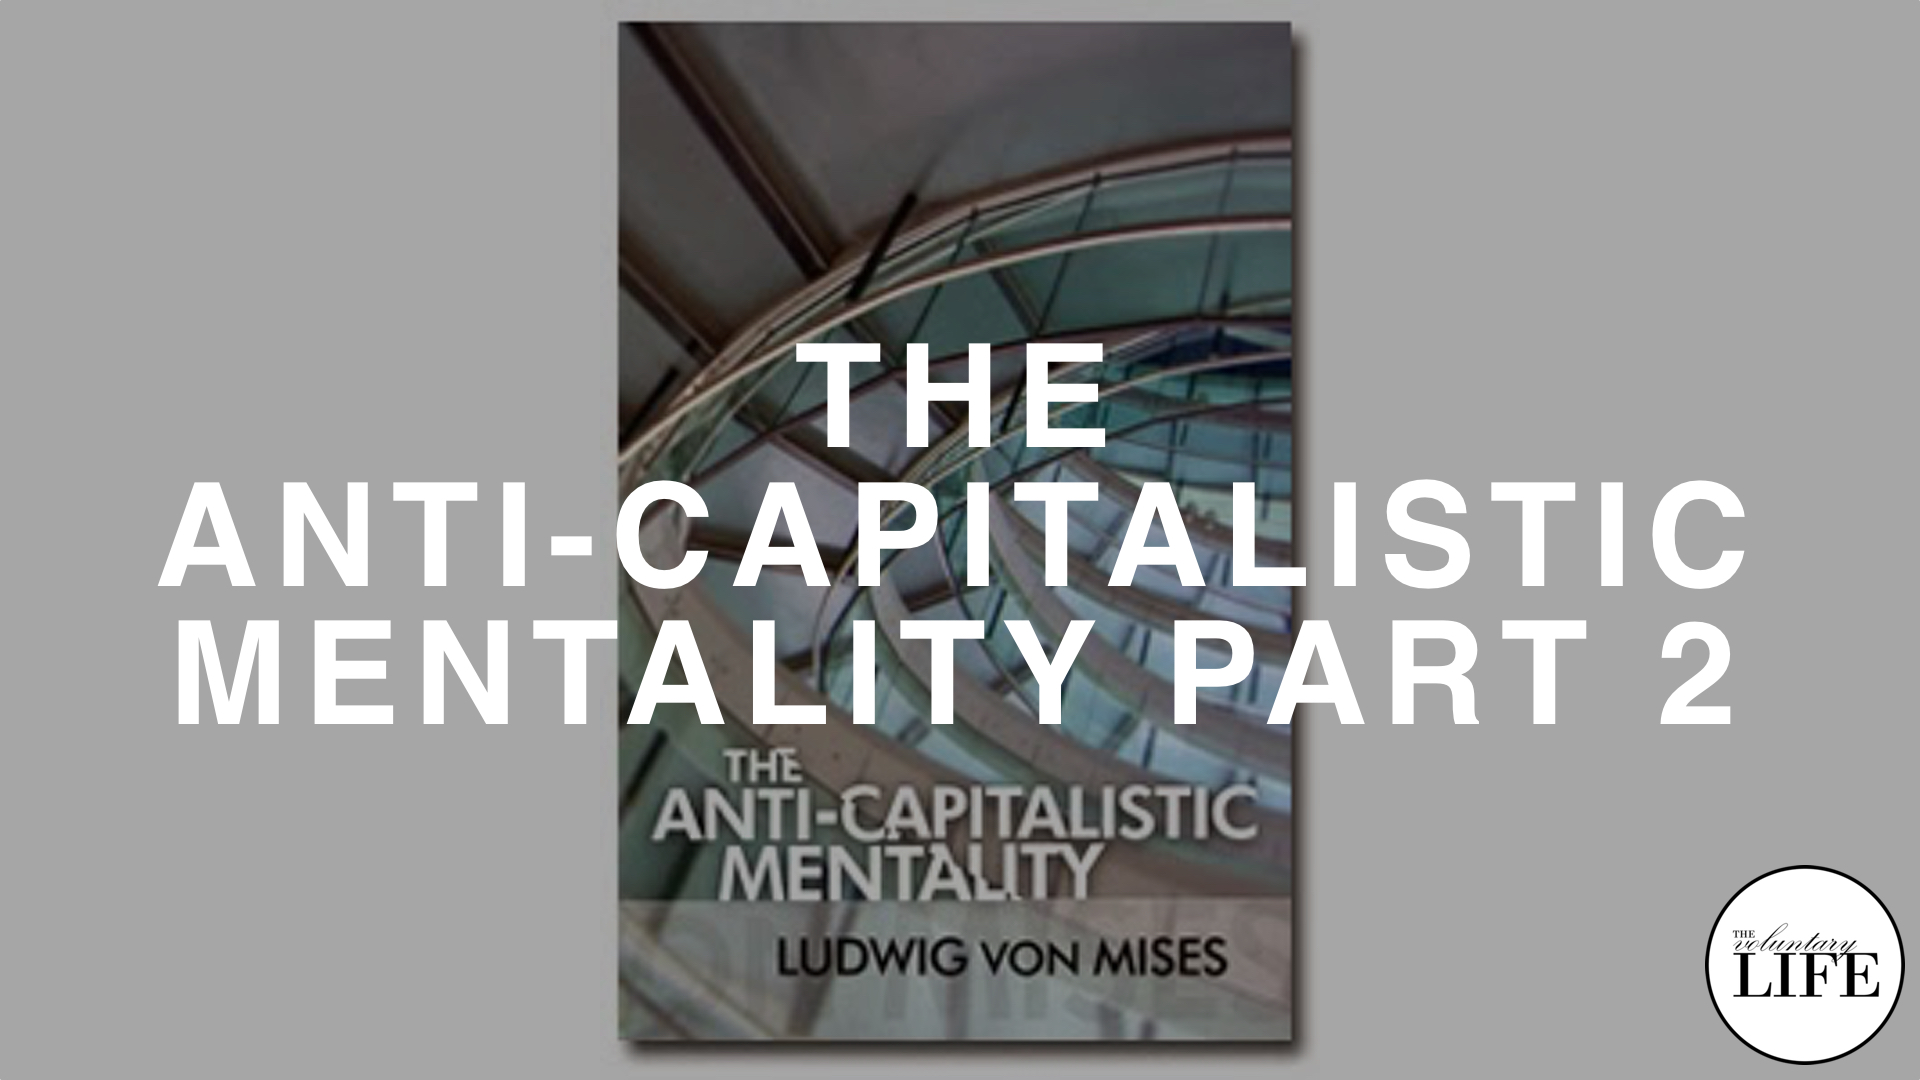 177 The Anti-Capitalistic Mentality by Ludwig Von Mises Part 2